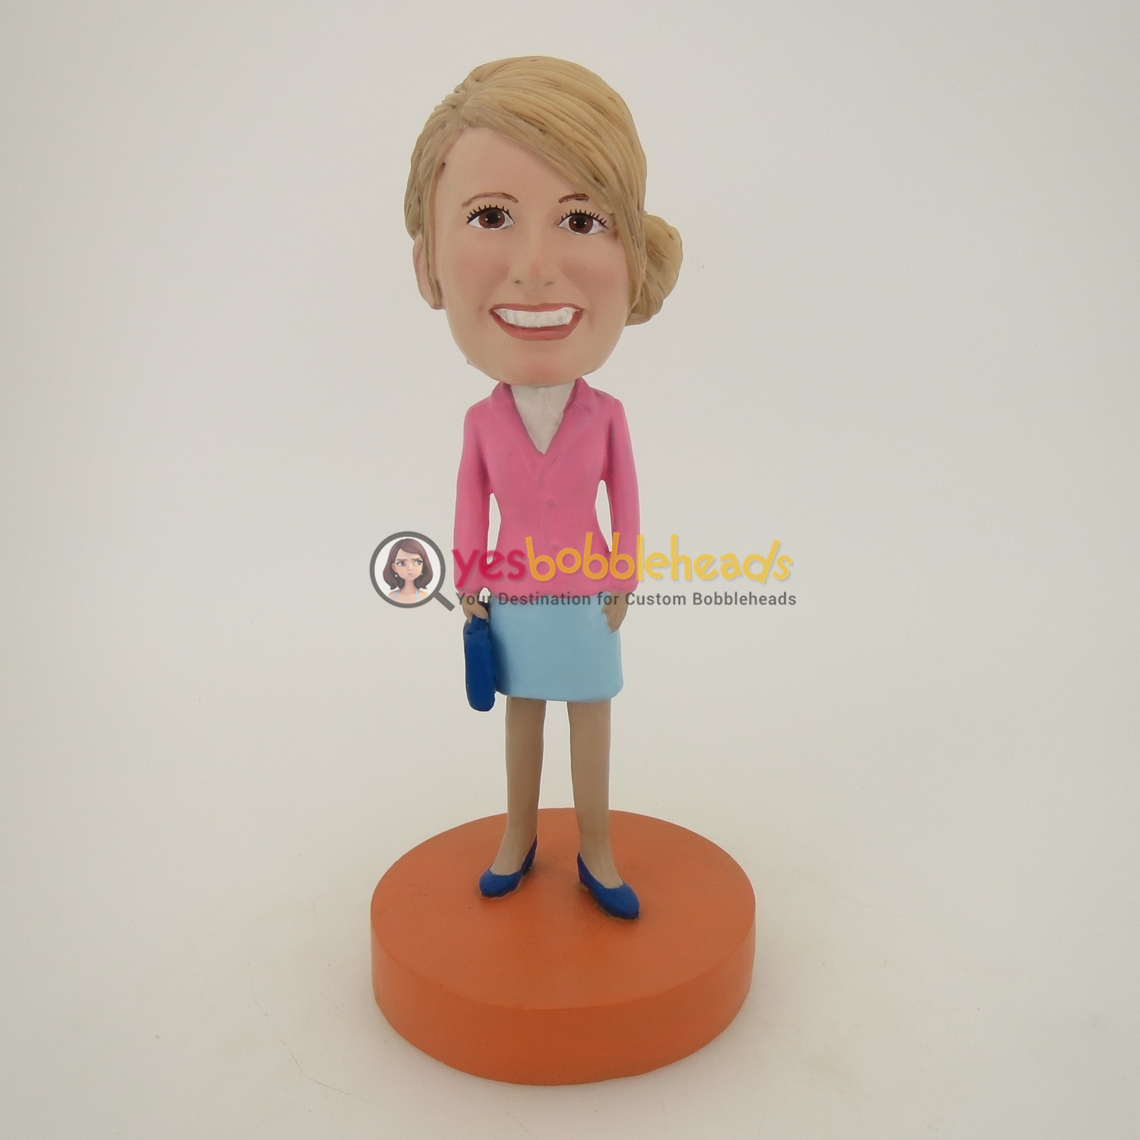 Picture of Custom Bobblehead Doll: Pink Suit Woman